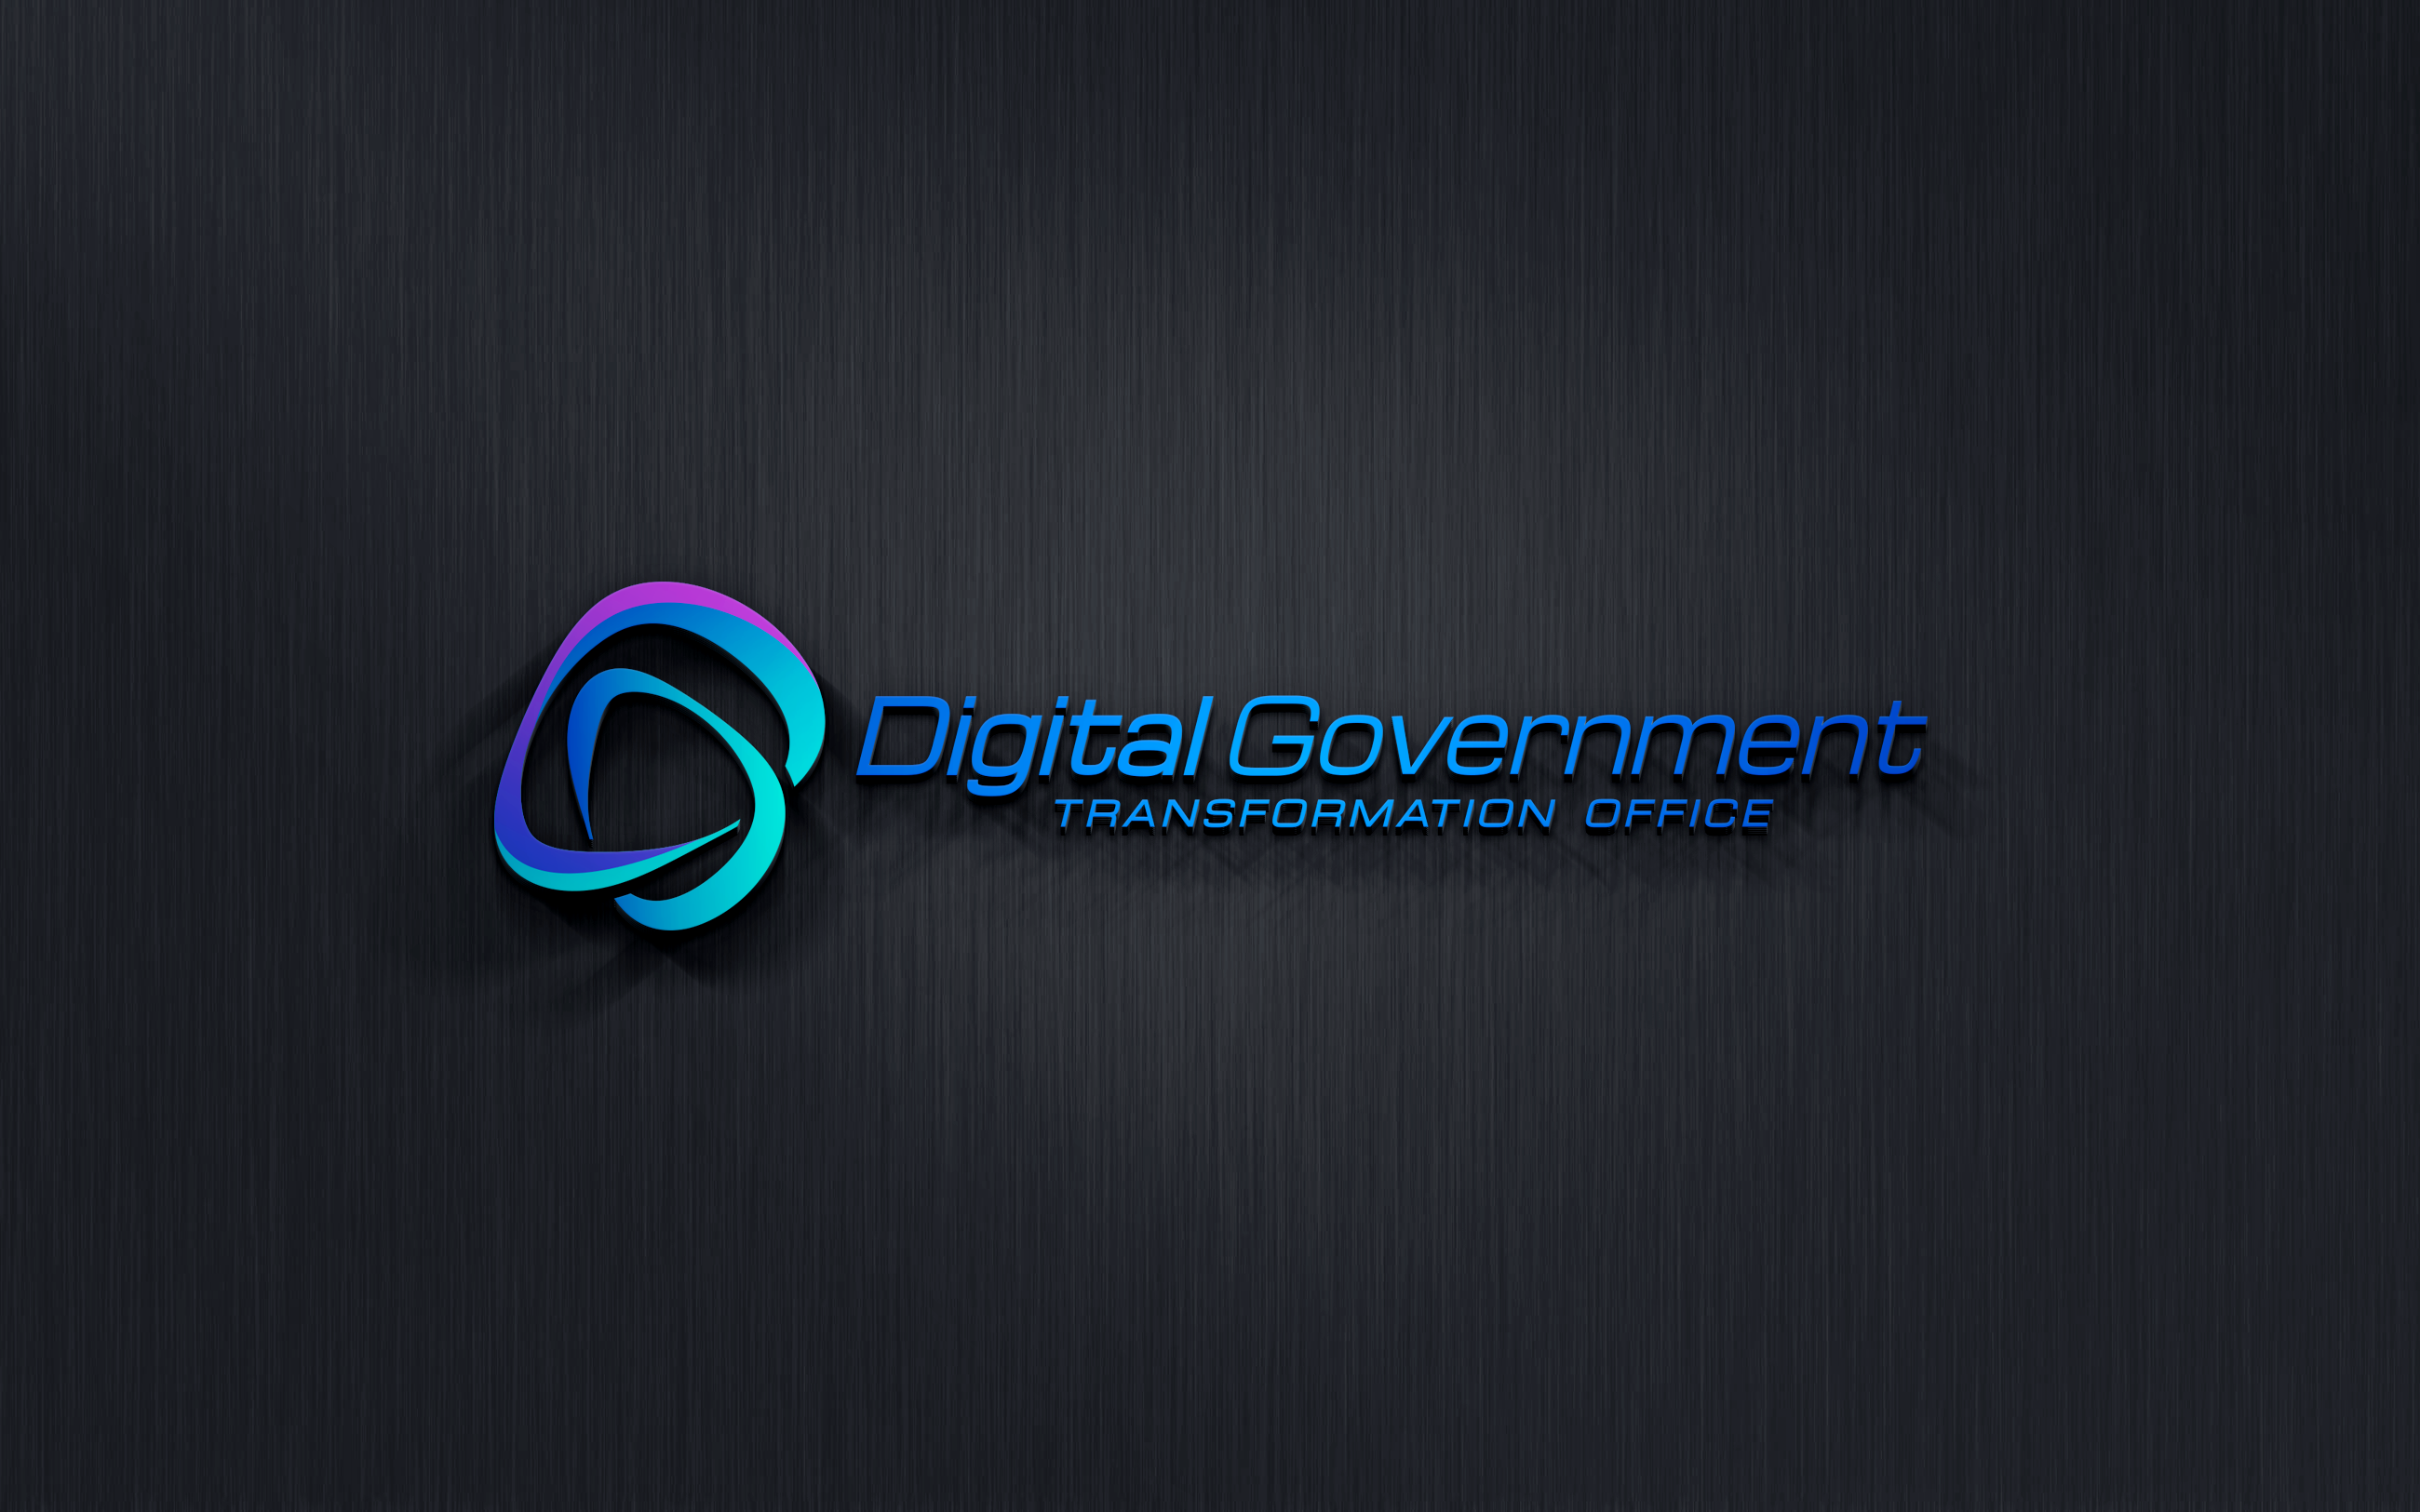 design a logo for government office which oversee and governs digital transformation  in the governm